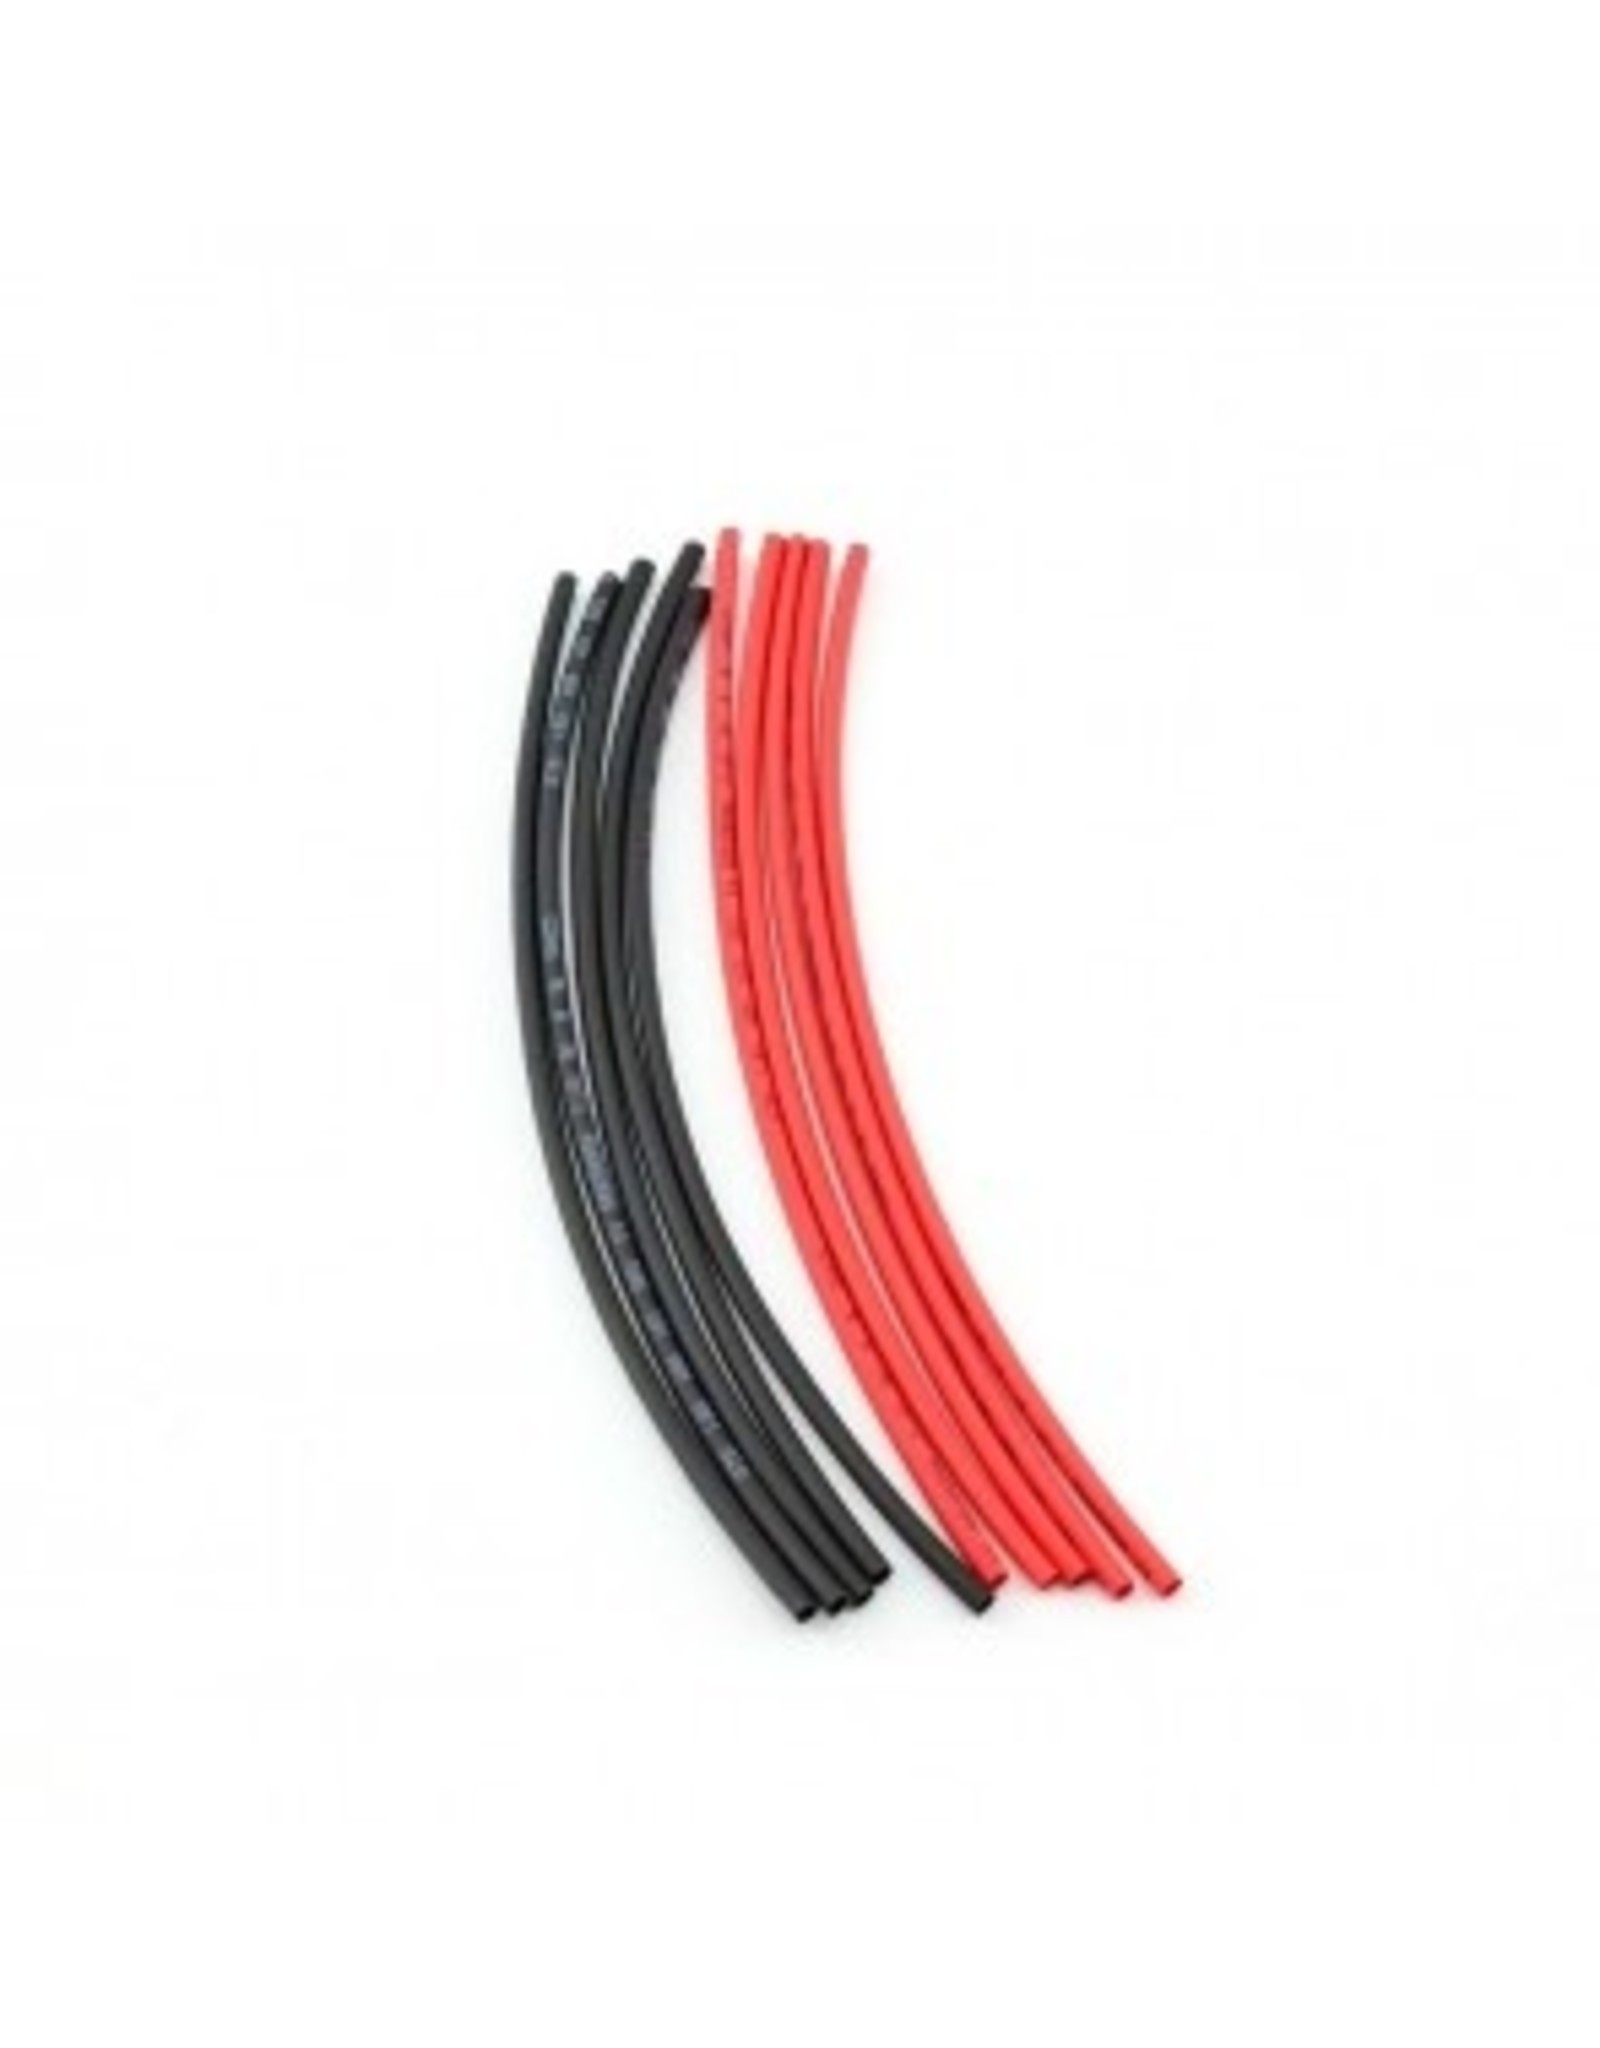 HobbyStar HOBBYSTAR HEAT-SHRINK TUBING, 2MM, 5PCS. RED/BLK (140-15-216)